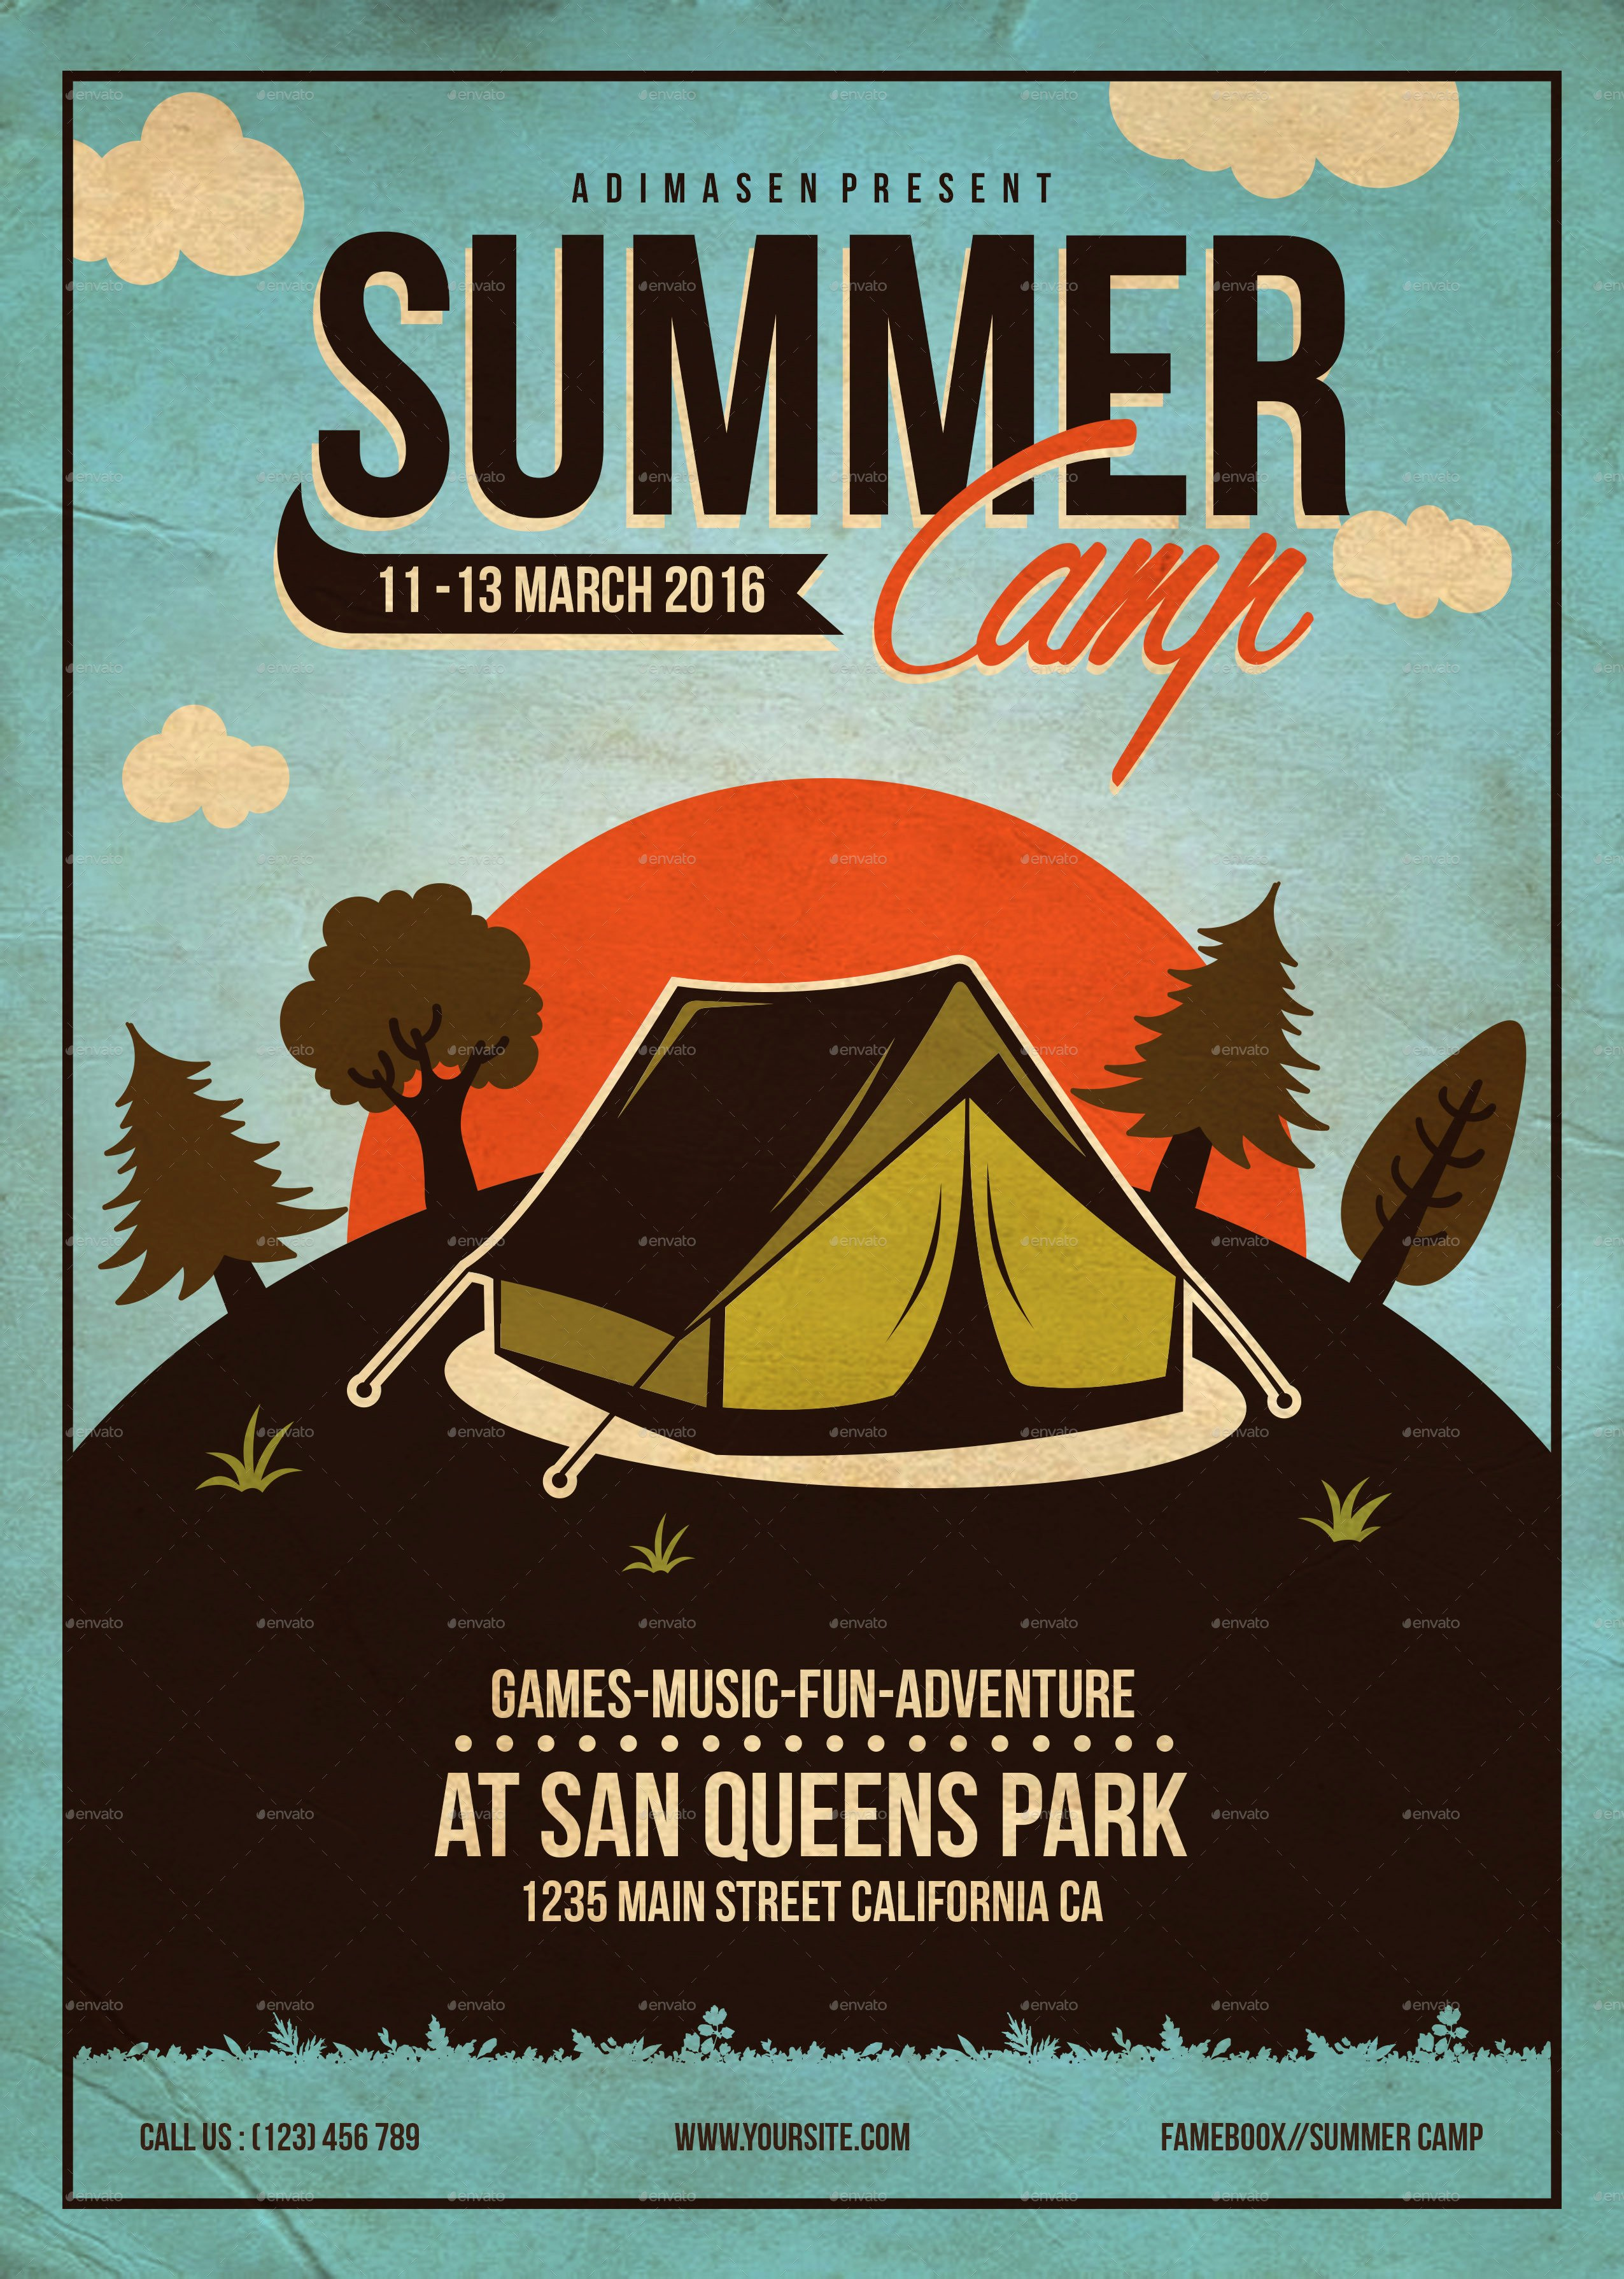 Free Summer Camp Flyer Template Beautiful Summer Camp Flyer Template by Adimasen